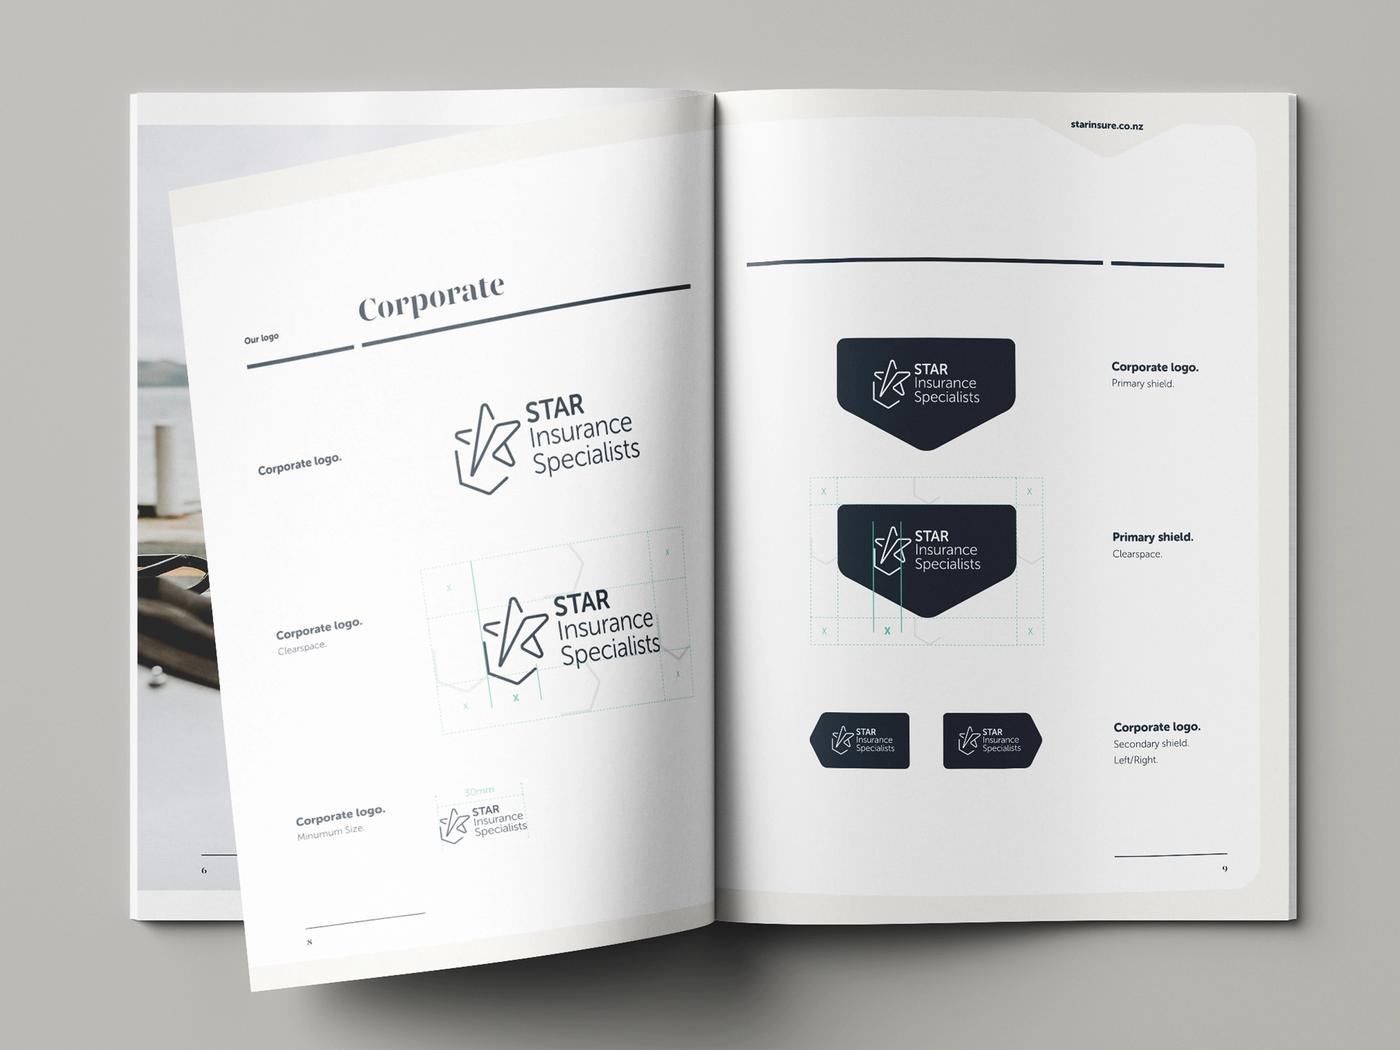 Star insurance brand style guide